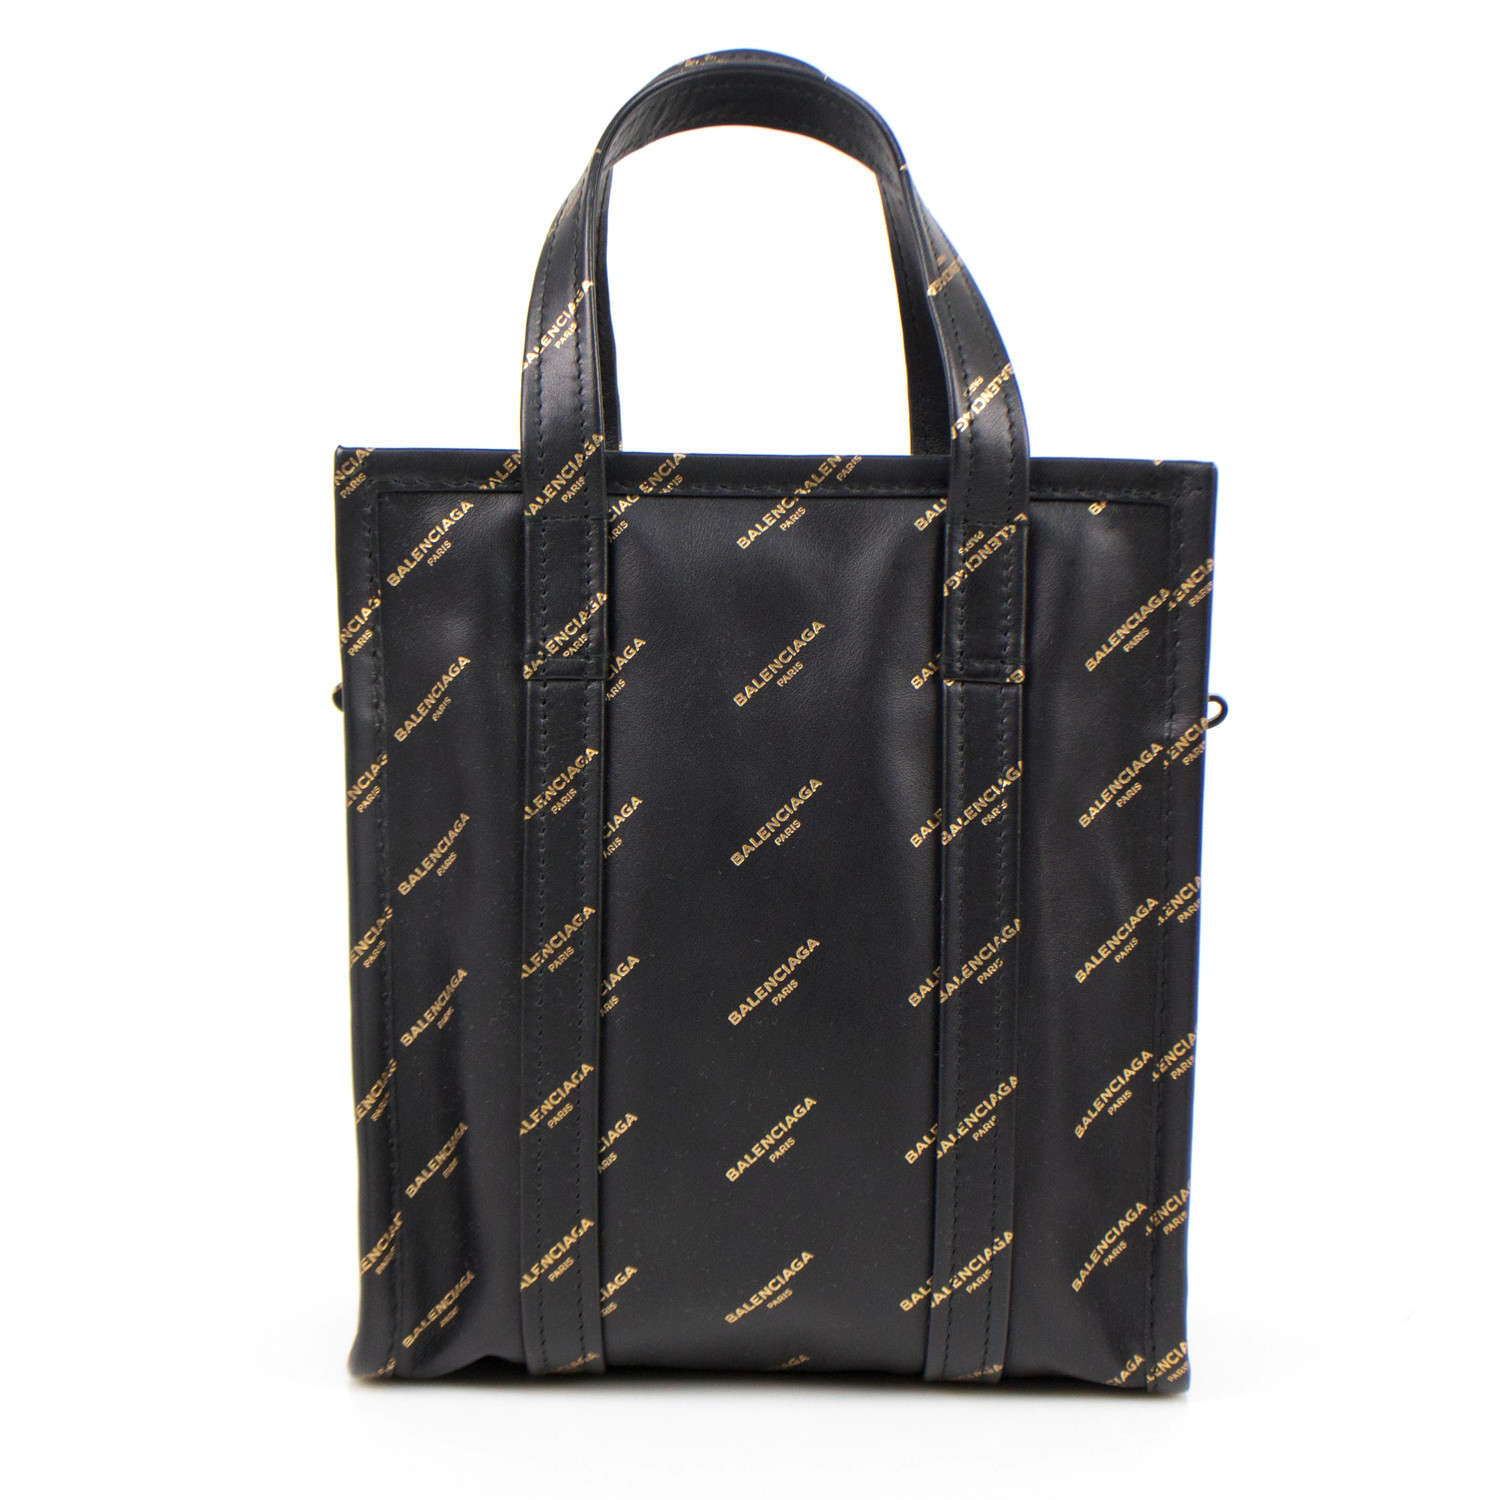 52296e4df1bf Bazar Shopper XS AJ Tote Bag    Black + Gold - Balenciaga - Touch of ...